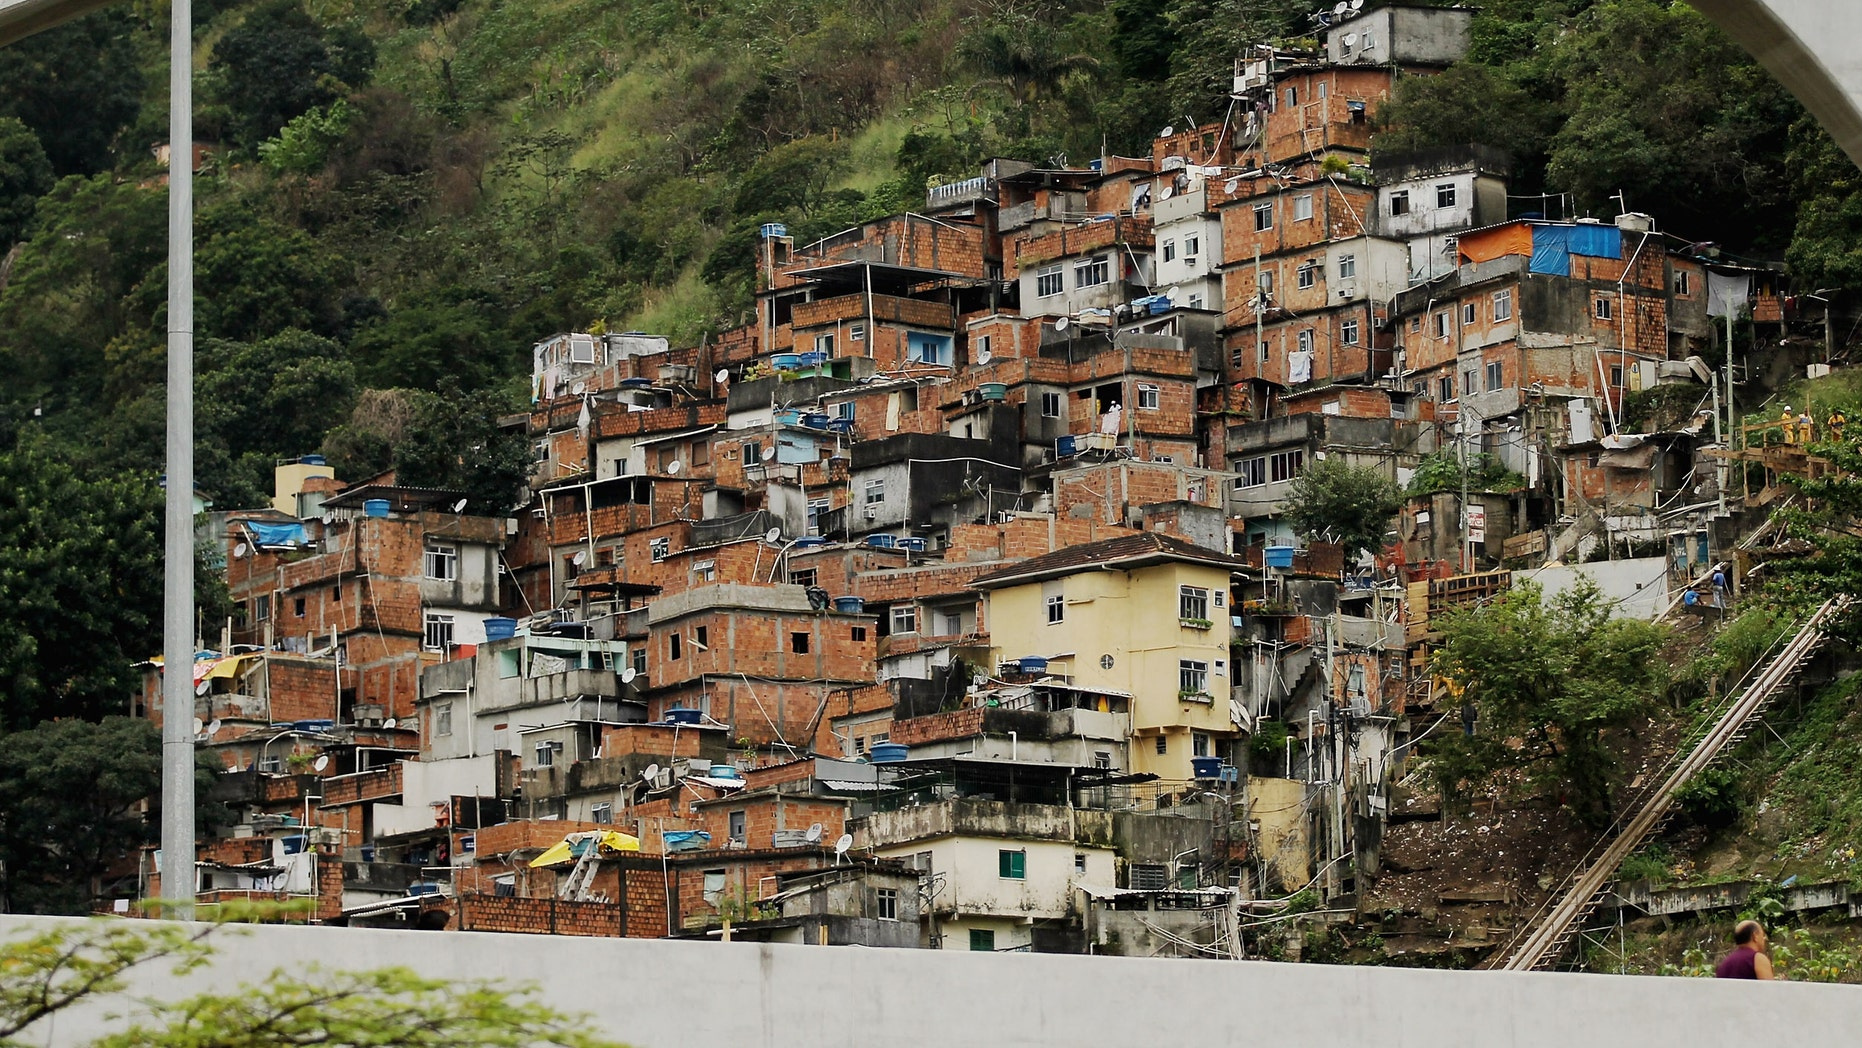 "A ""pacified"" favela, or squatter settlement, is seen on a forested hillside on June 21, 2012 in Rio de Janeiro, Brazil. Rio de Janieroâs authorities have successfully ""pacified"" a number of formerly crime-ridden favelas in the city.  (Photo by Mario Tama/Getty Images)"